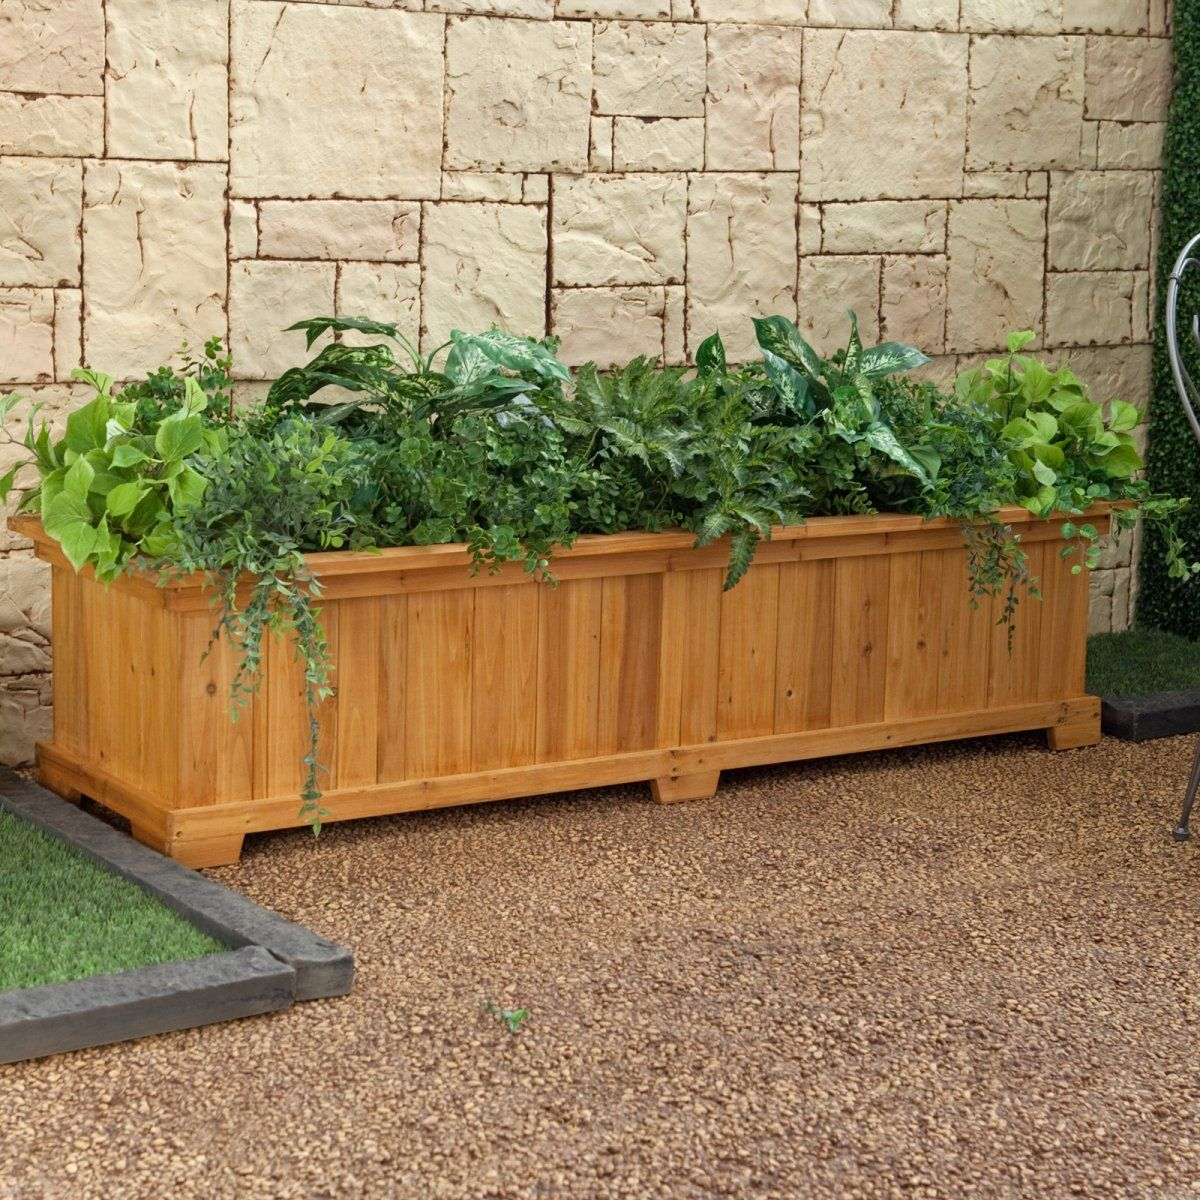 Rectangular cedar wood aster patio planter box planter for Garden planter ideas